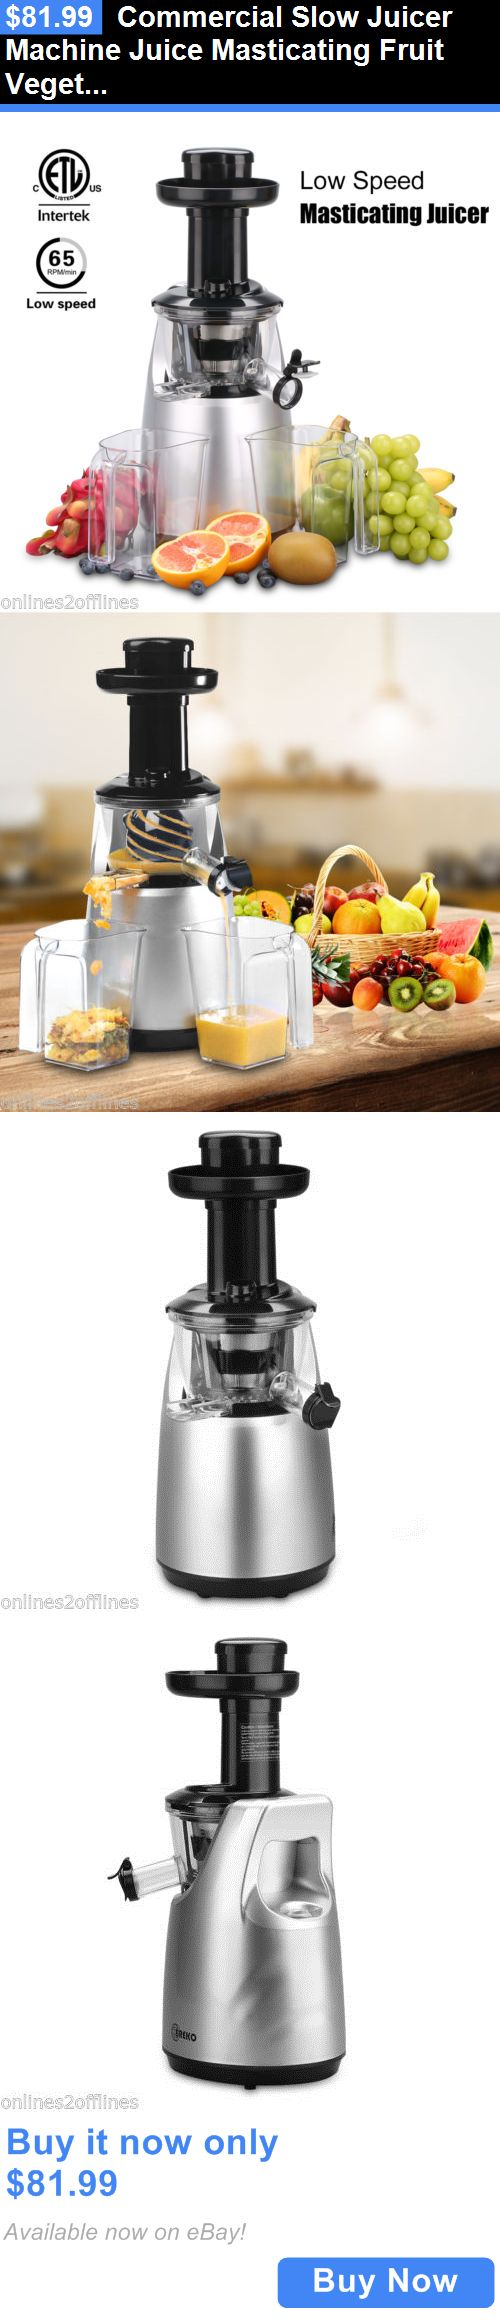 Small Kitchen Appliances: Commercial Slow Juicer Machine Juice Masticating Fruit Vegetable Extractor Maker BUY IT NOW ONLY: $81.99